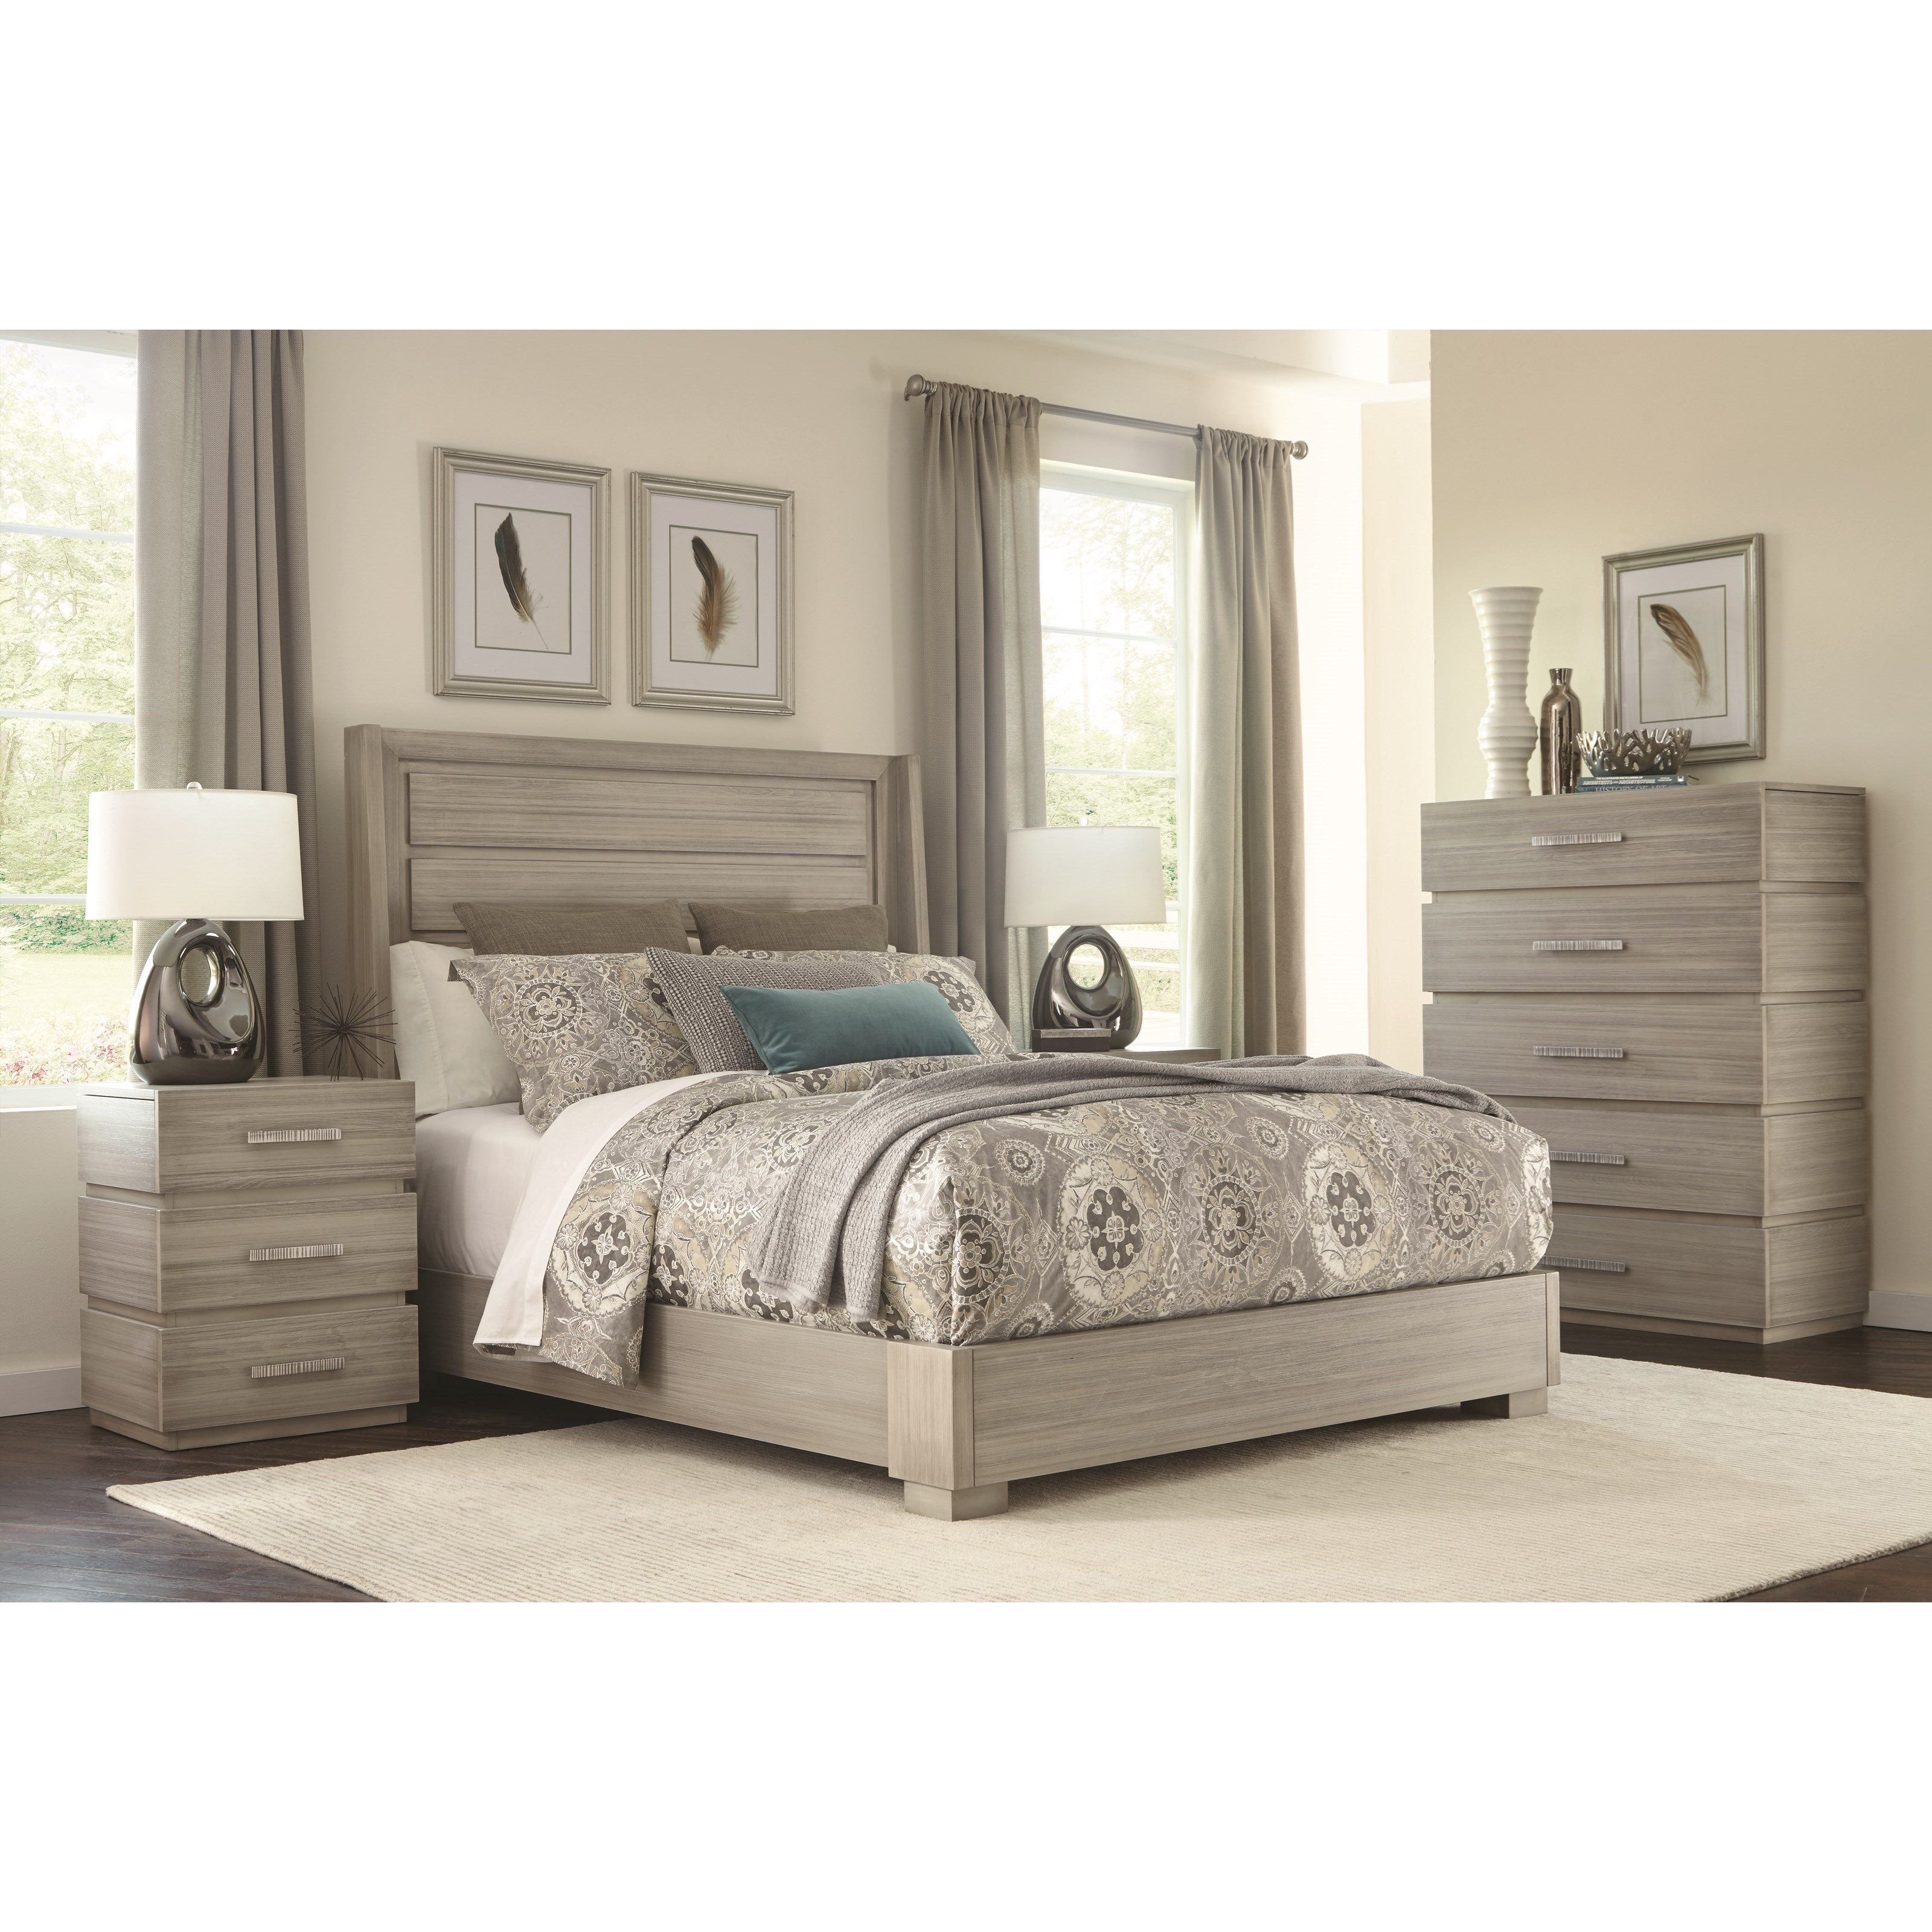 Modern Simplicity Queen Bedroom Group by Durham at Jordan's Home Furnishings